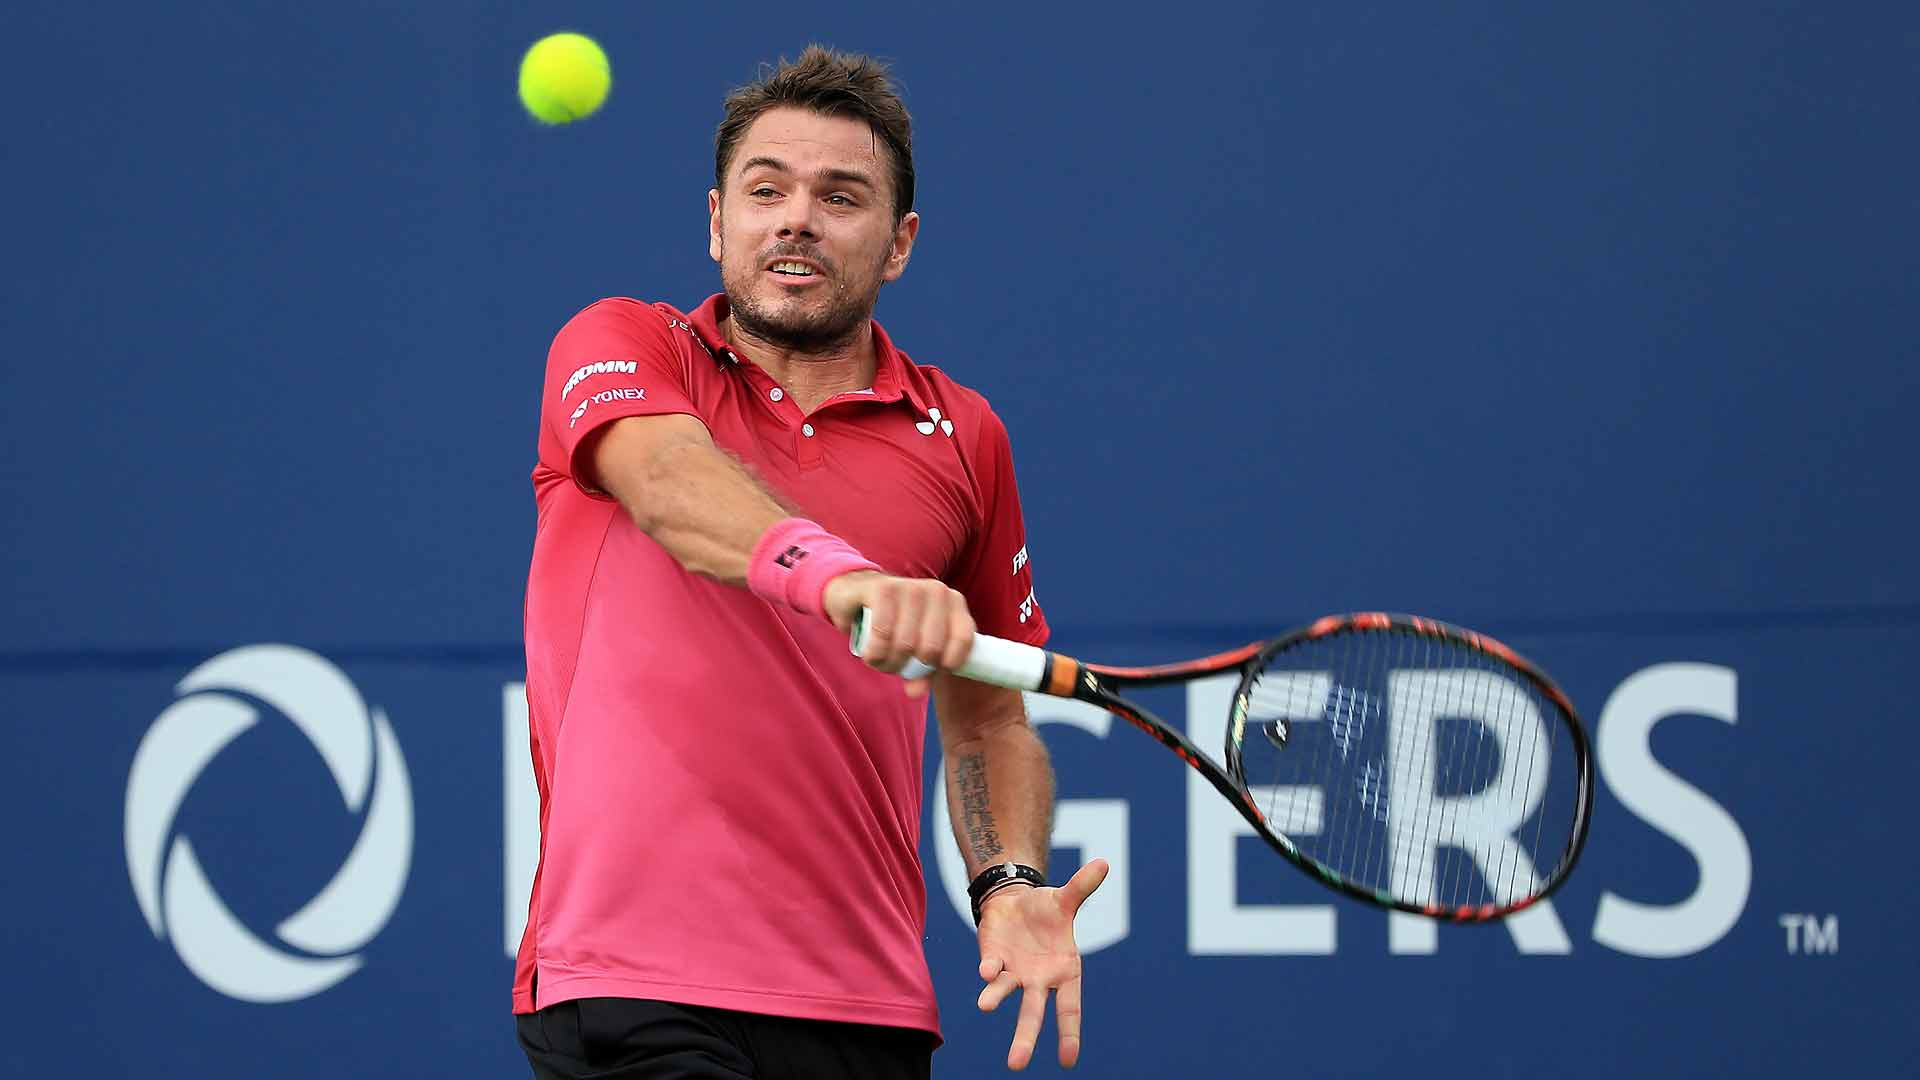 Stan Wawrinka defeats Jack Sock on Thursday to move into the quarter-finals at the Rogers Cup.